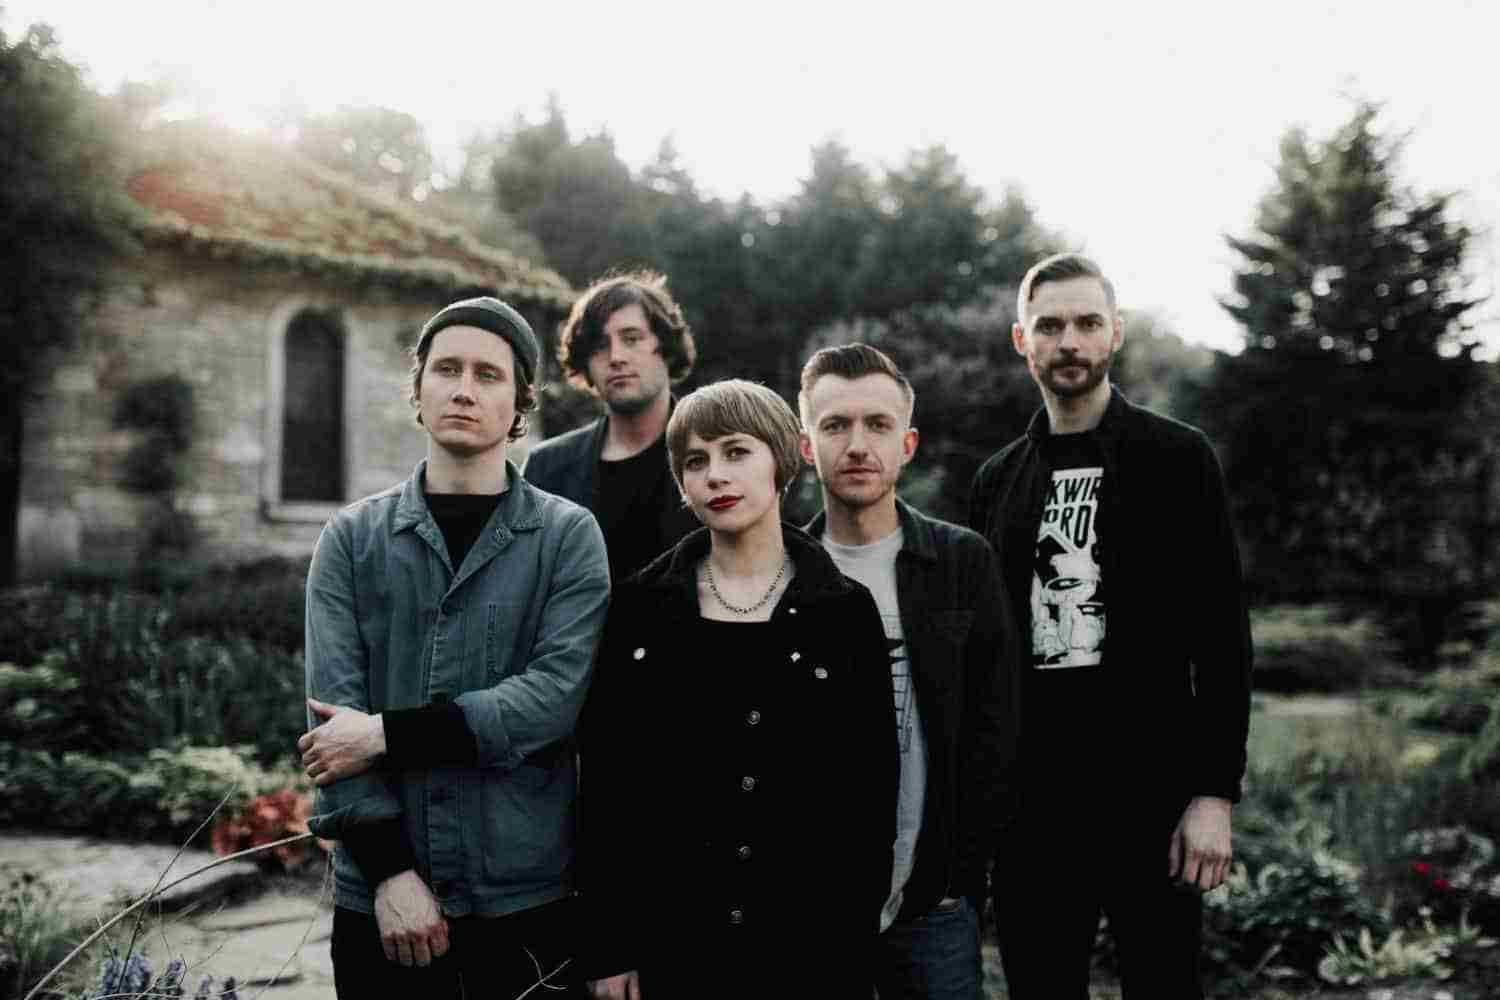 Rolo Tomassi  explore the 'Aftermath' with their new track